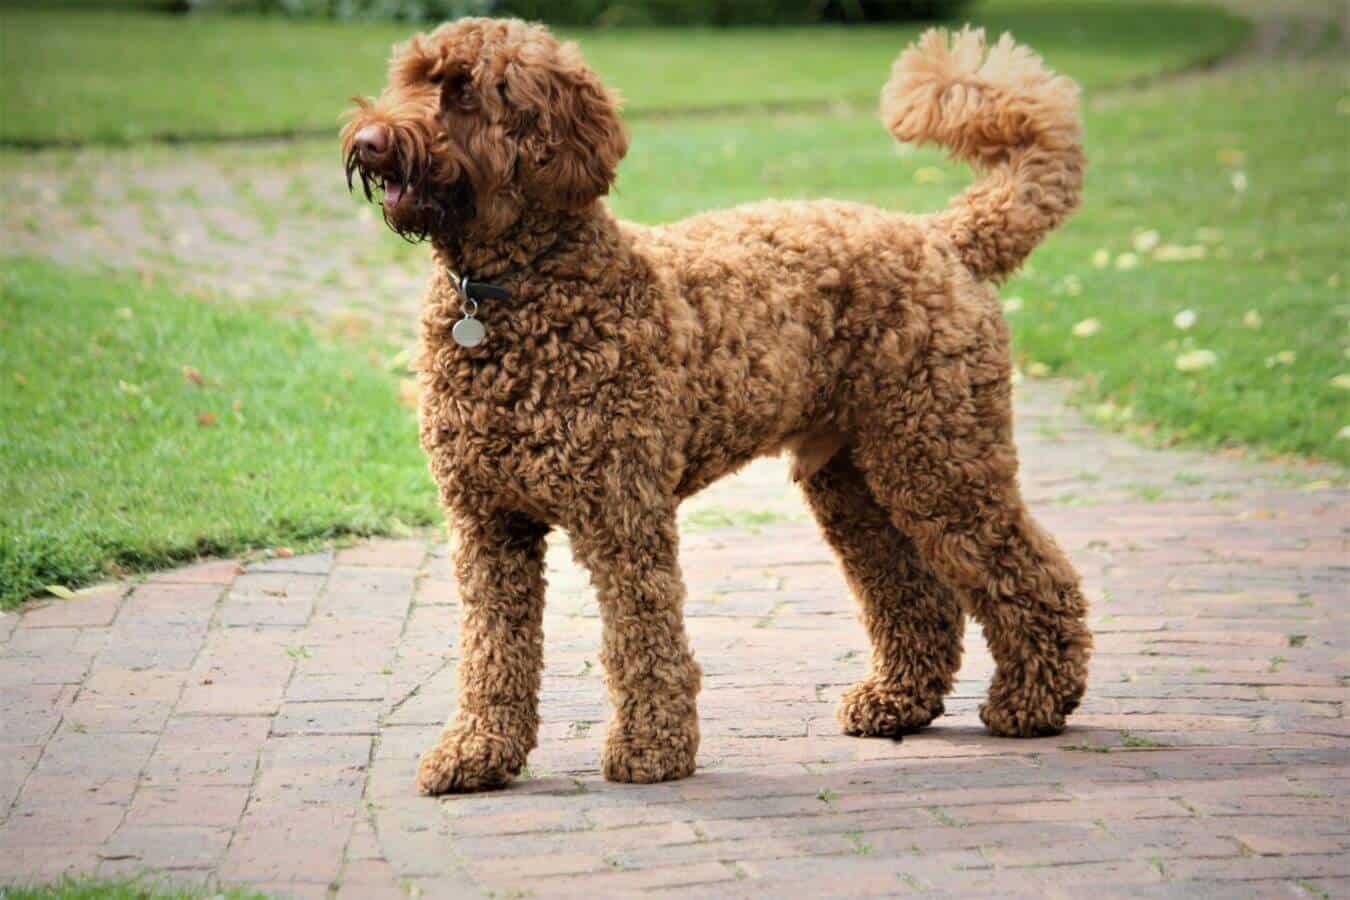 A dog (labradoodle) standing outside